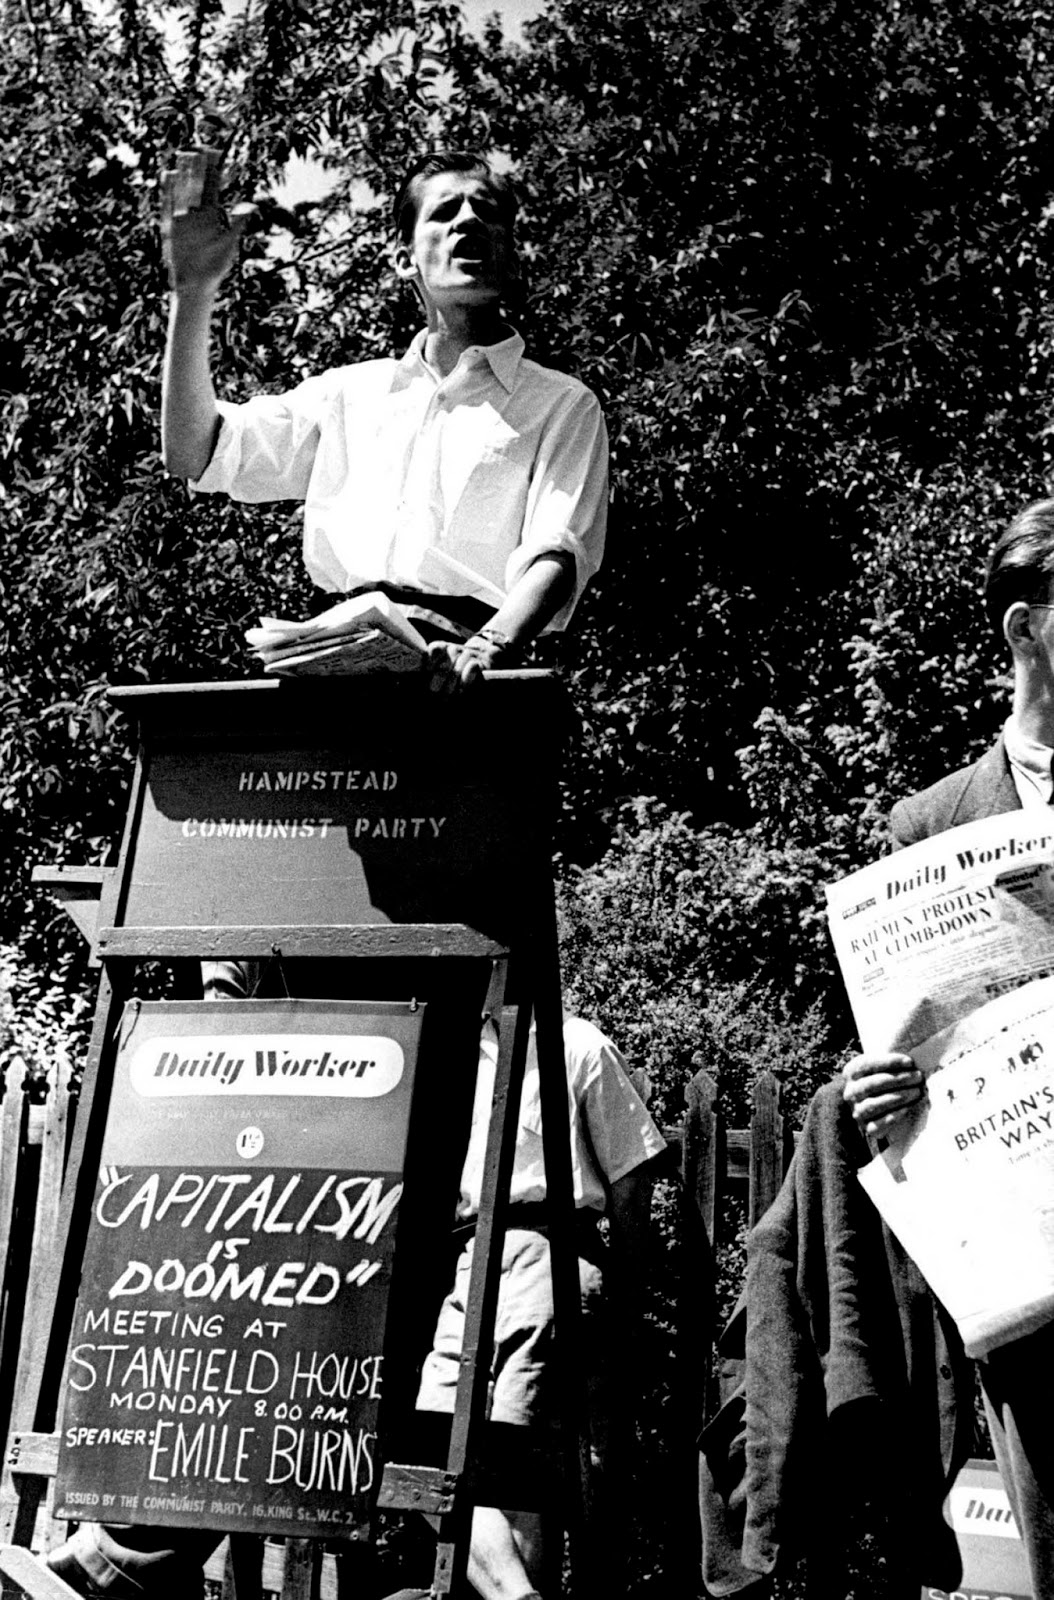 A member of the Hampstead Communist Party addresses a rally. 1952.